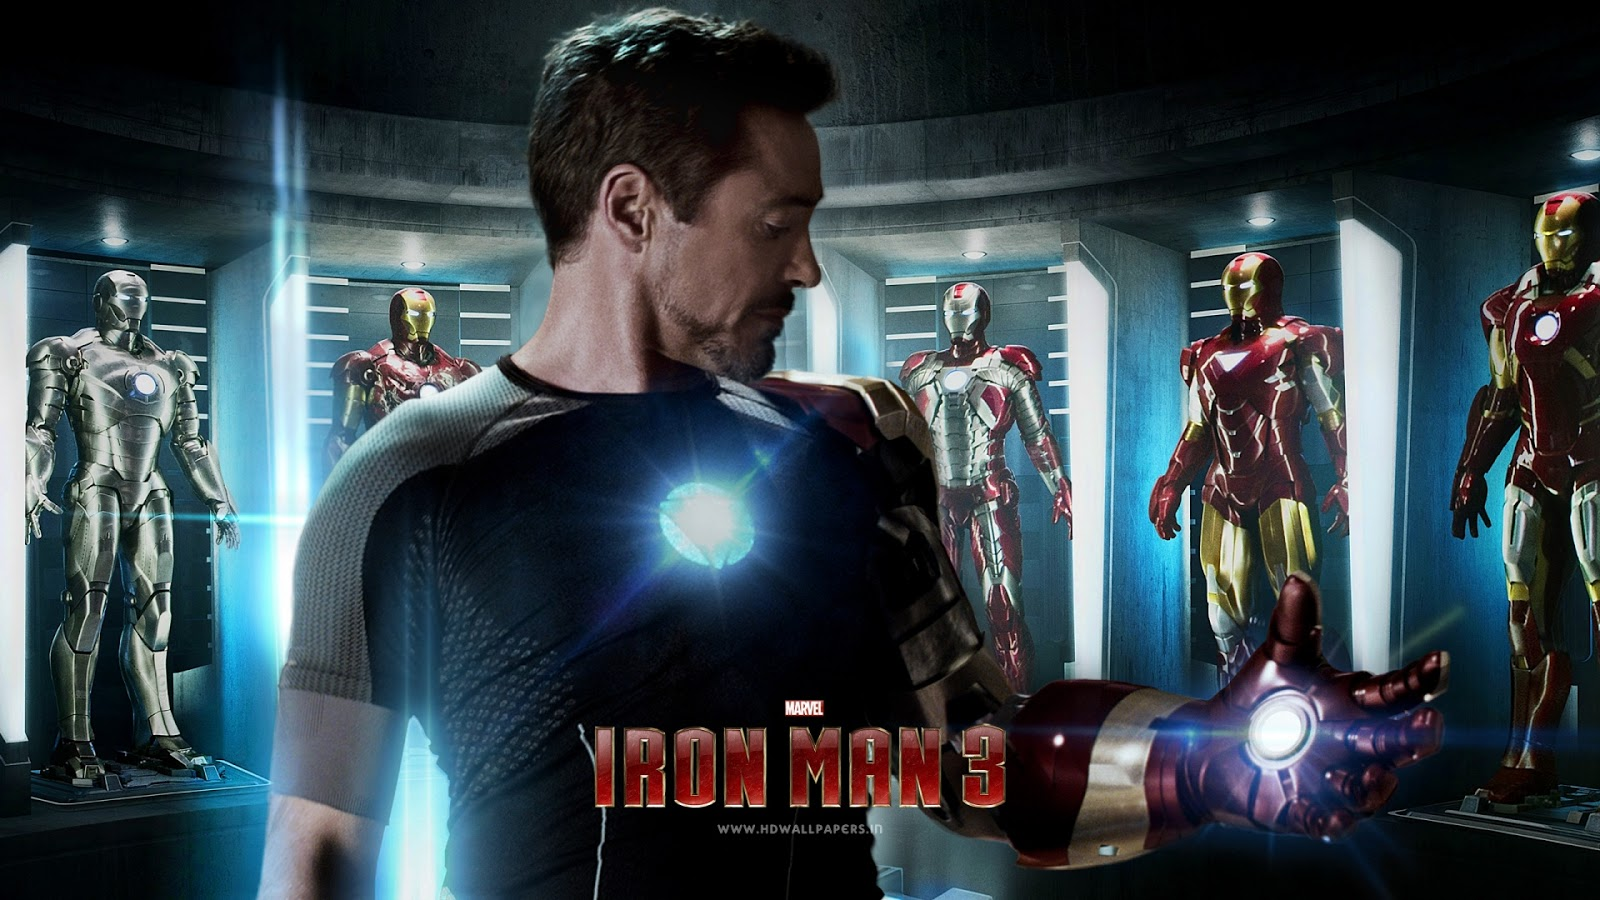 Tony Stark Wallpaper in Iron Man Movie HD